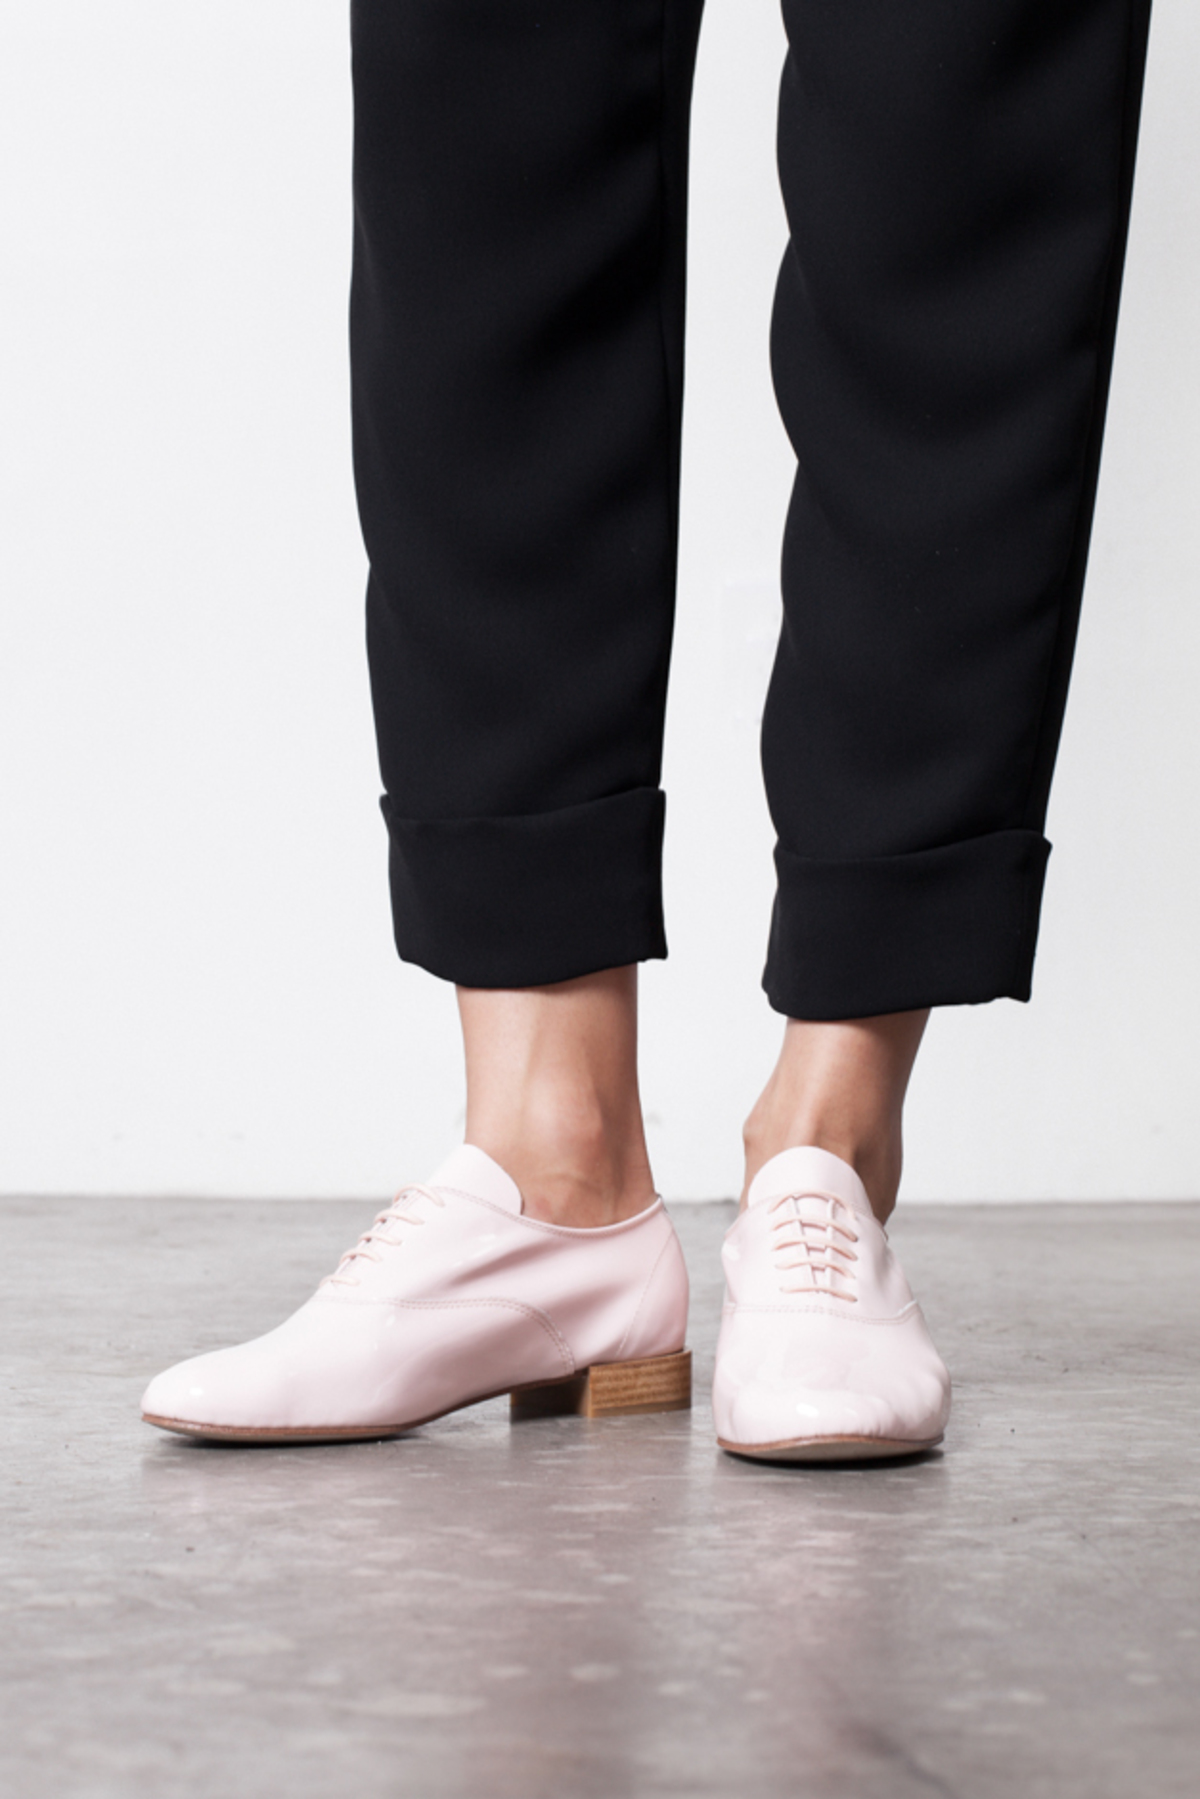 Repetto Zizi Oxford from One of a Few | Garmentory